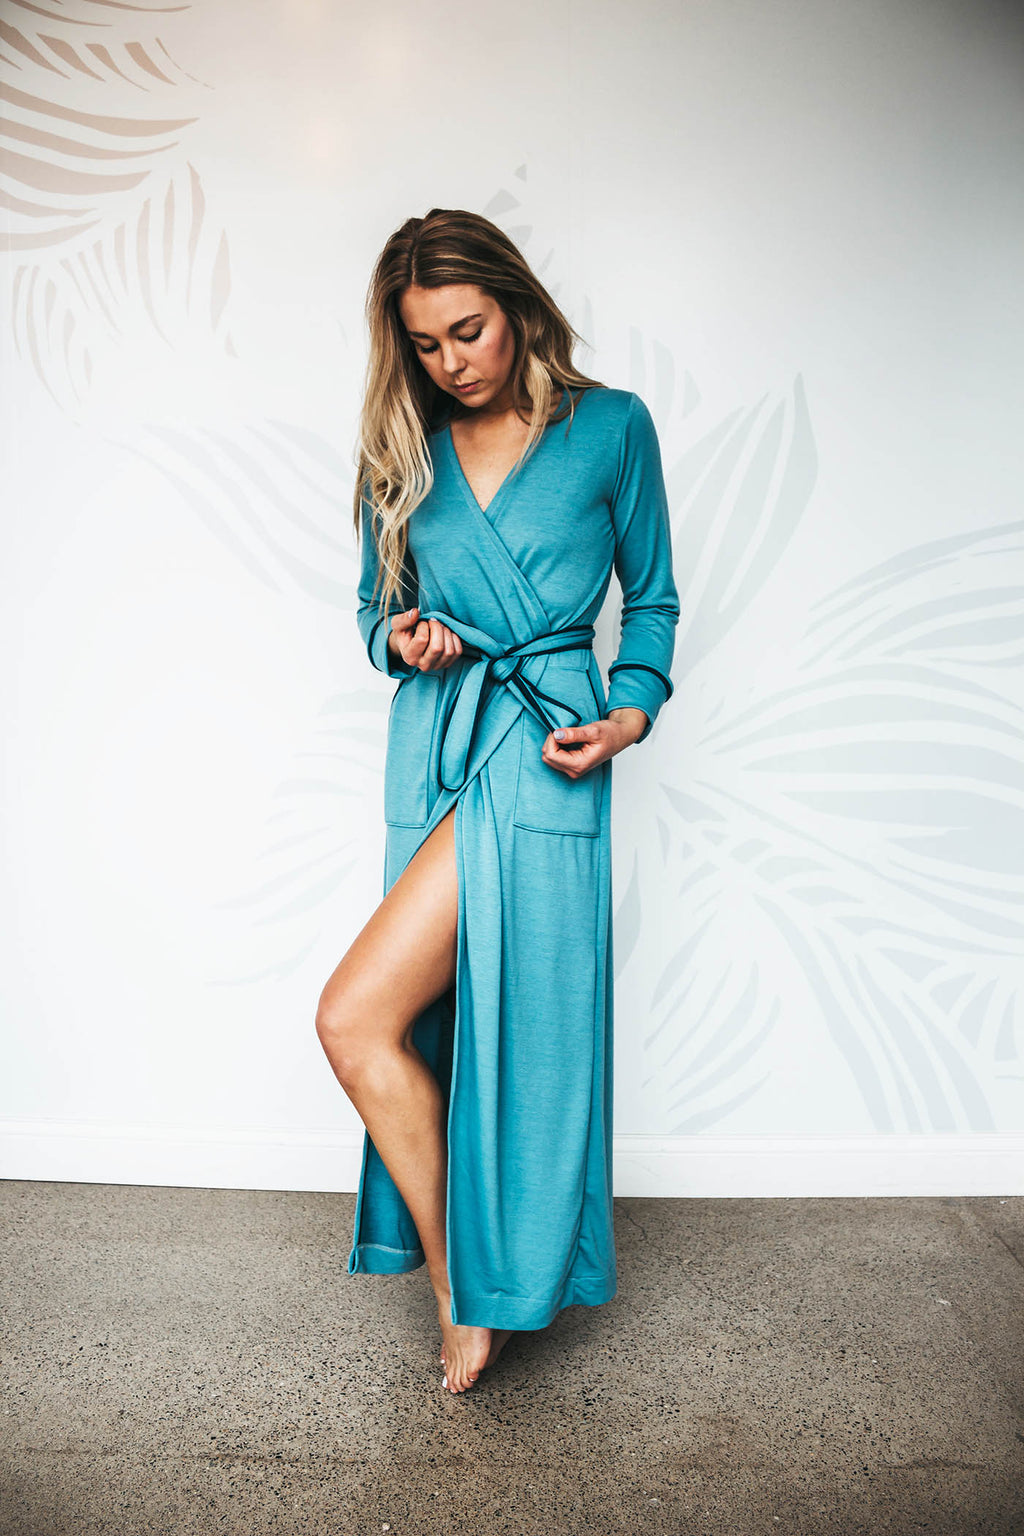 Soft Teal Robe